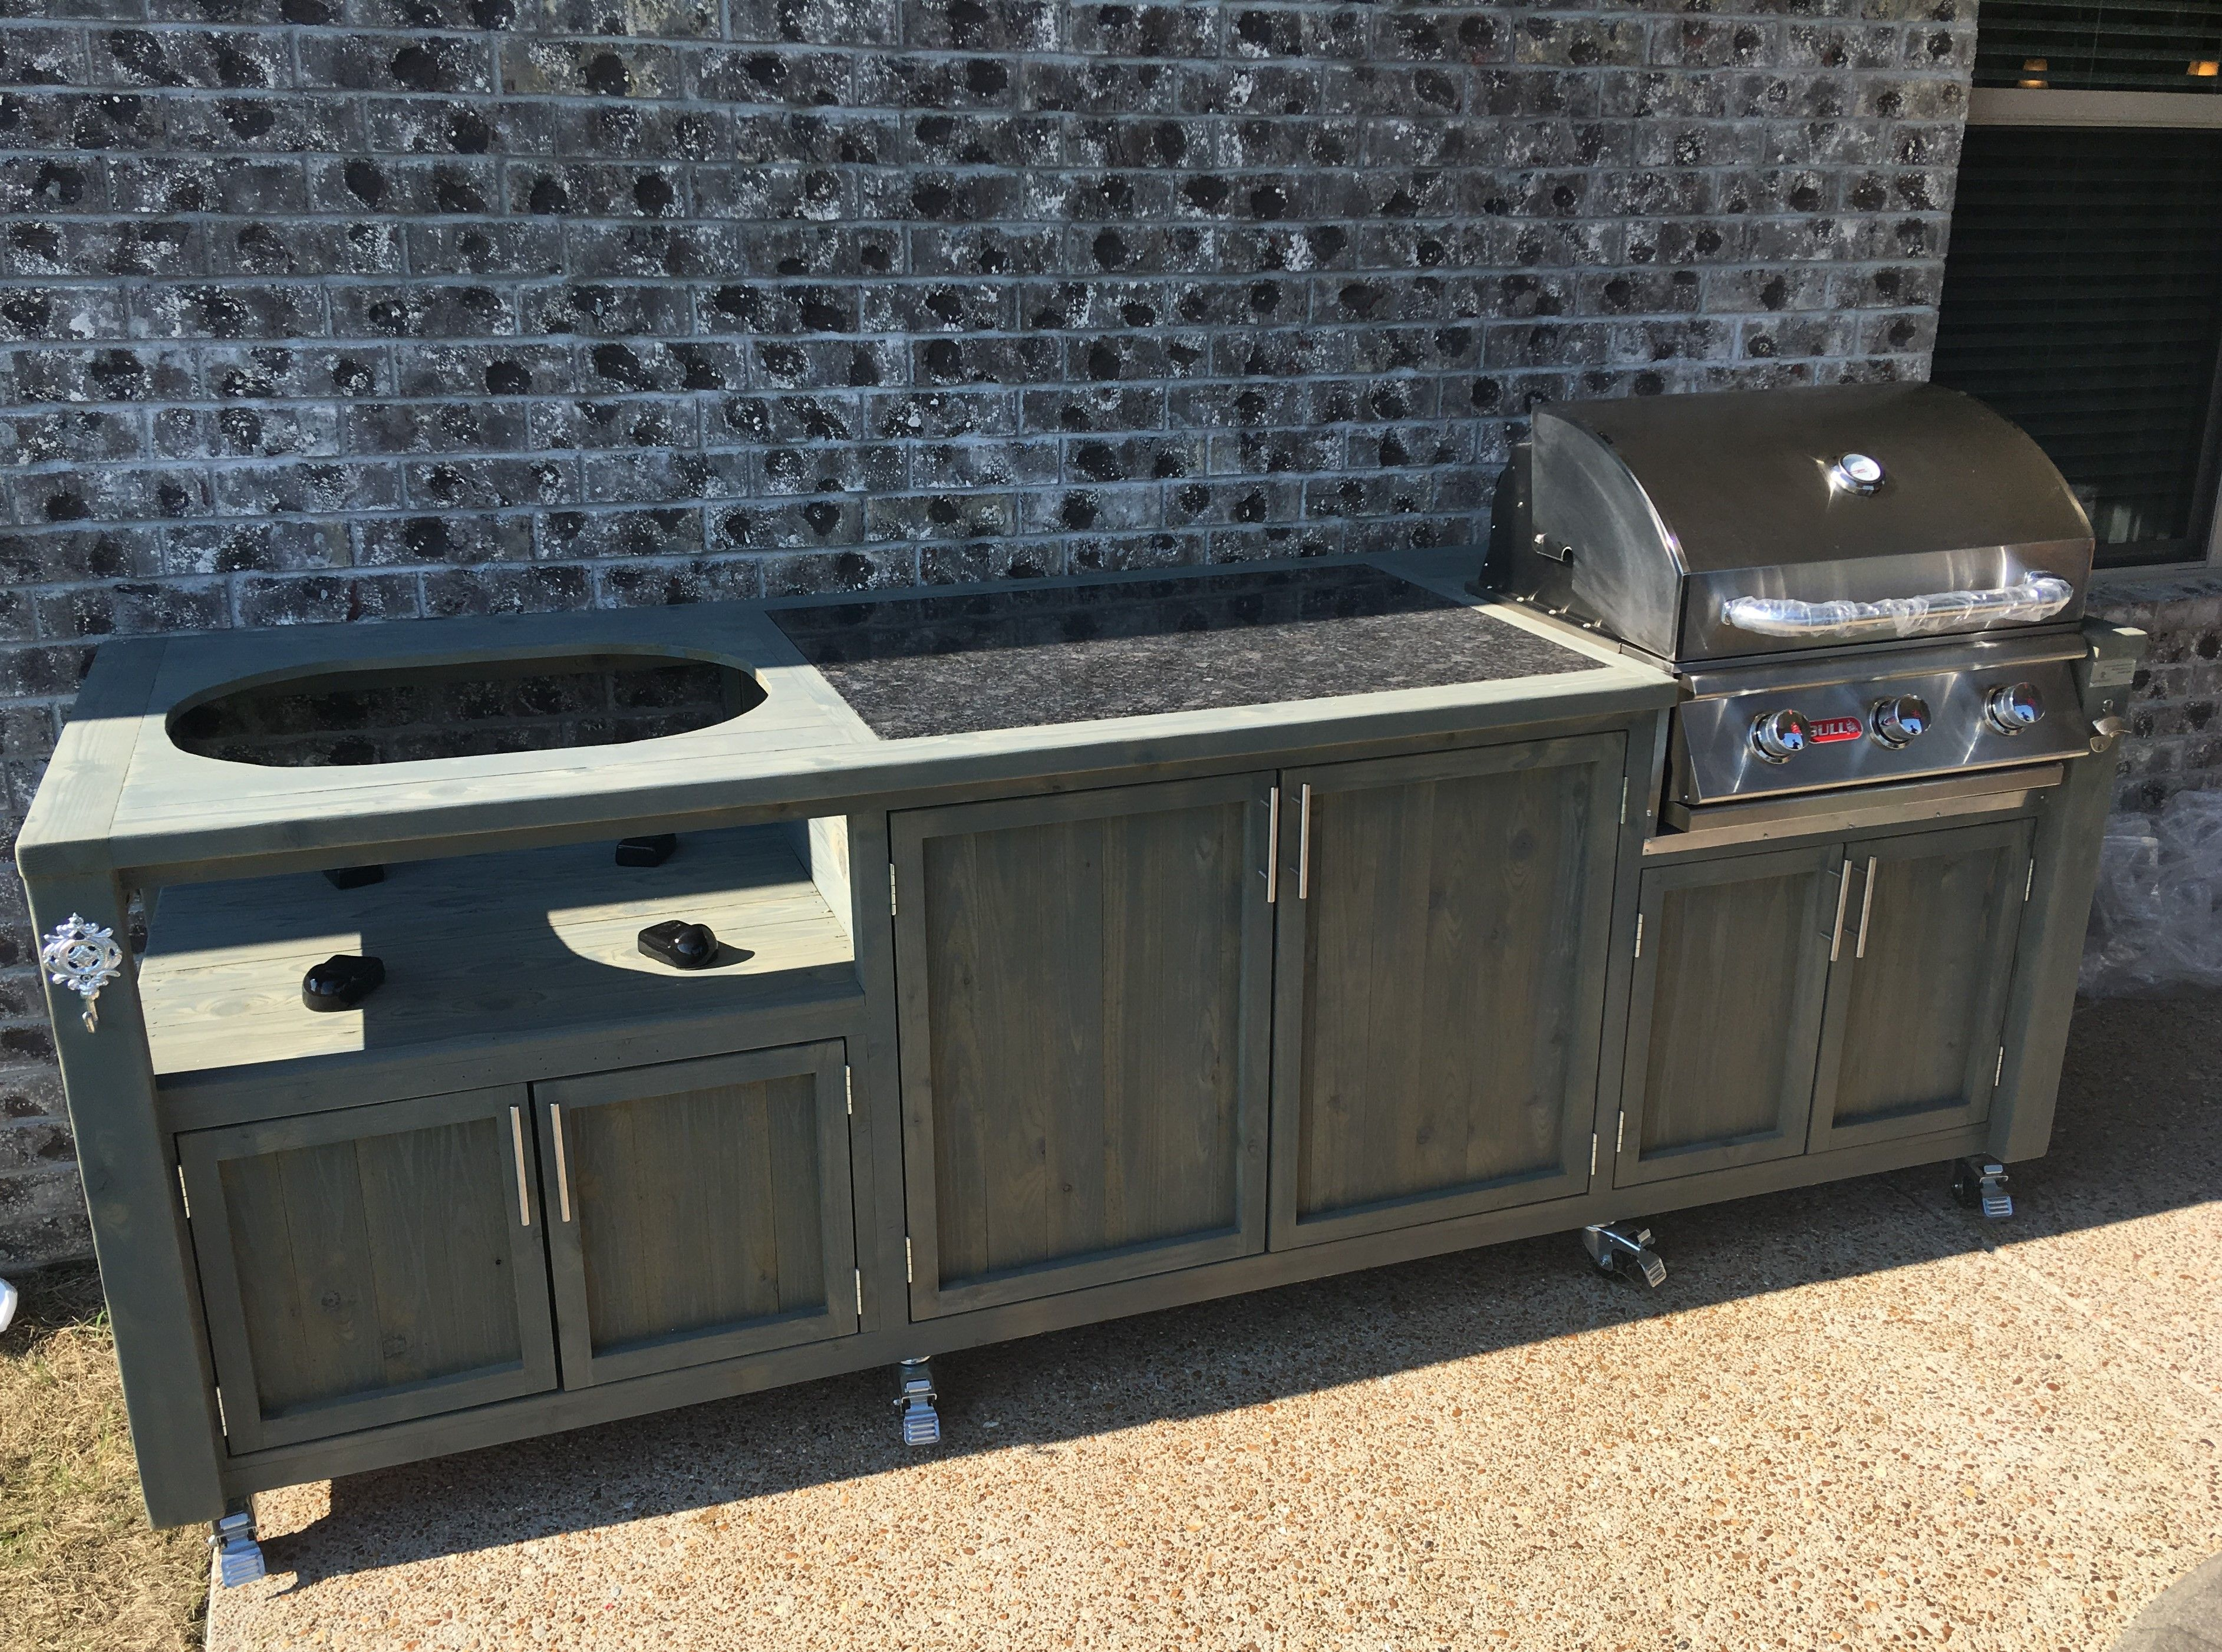 Dual Grill Cabinet For Bull Gas Grill Primo Kamado Grill Table Custom Grill Outdoor Kitchen